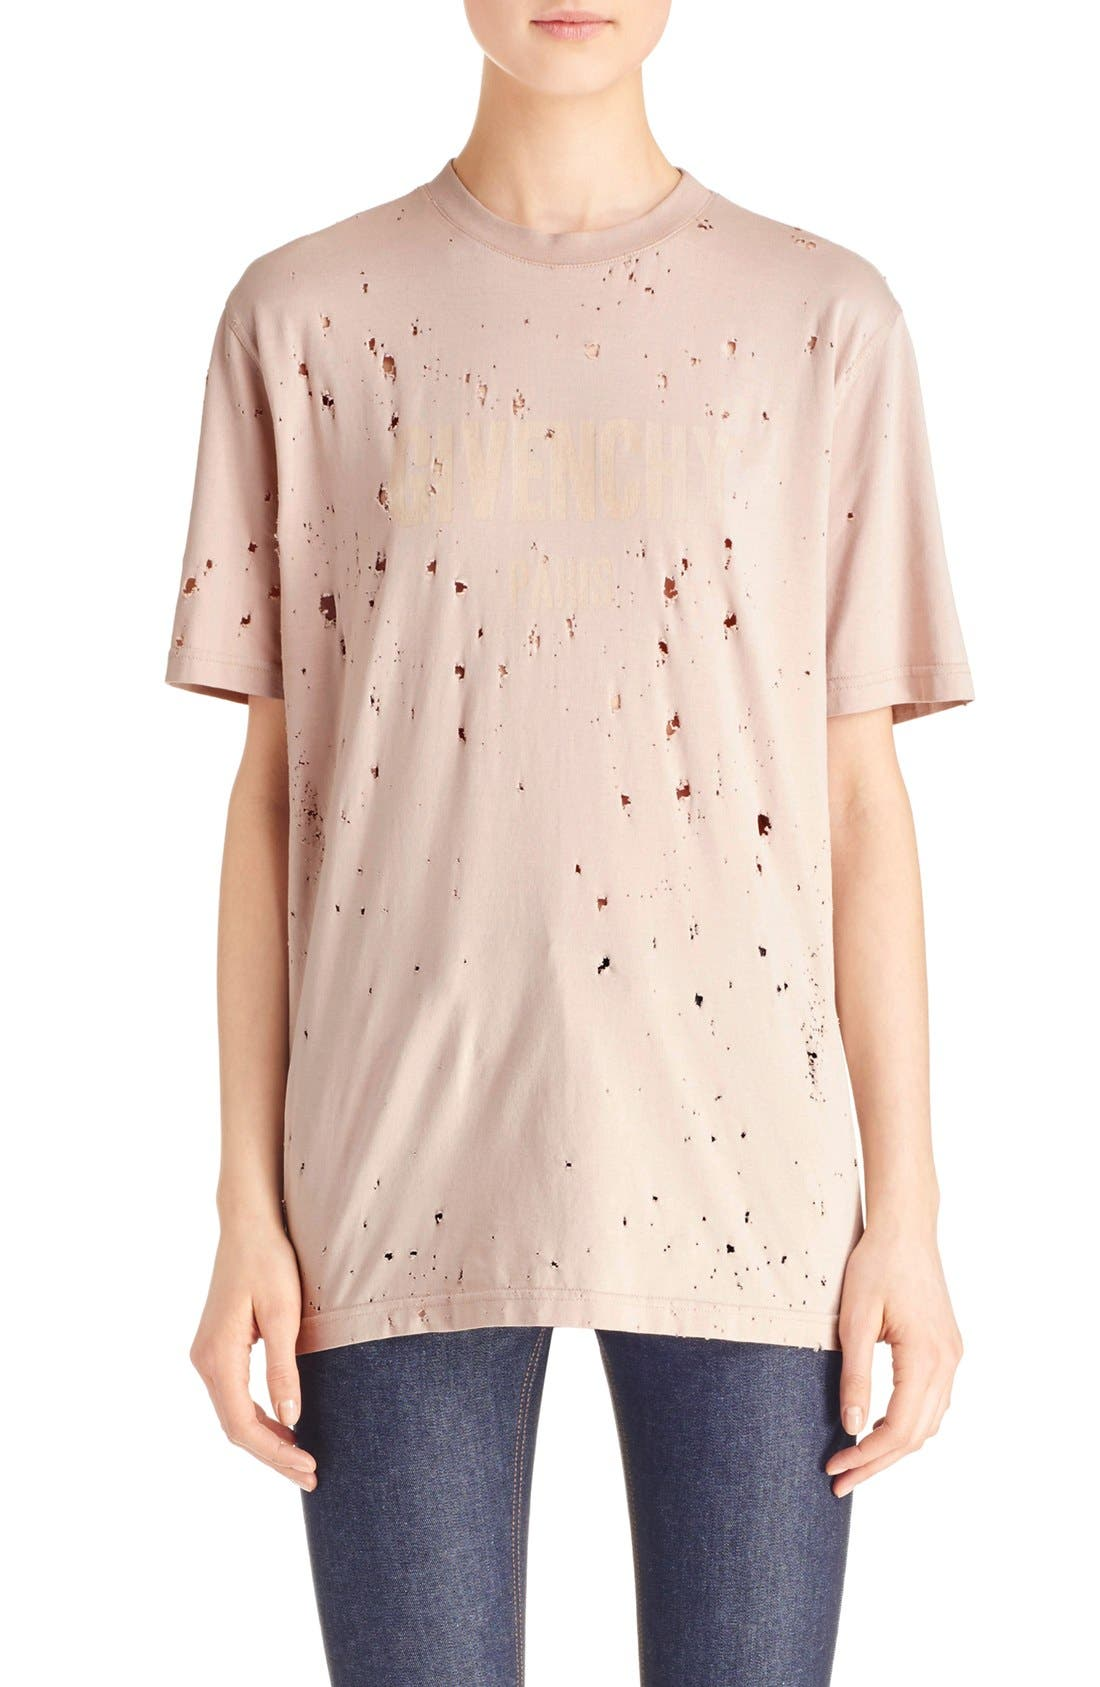 GIVENCHY Logo Print Destroyed Stretch Jersey Tee